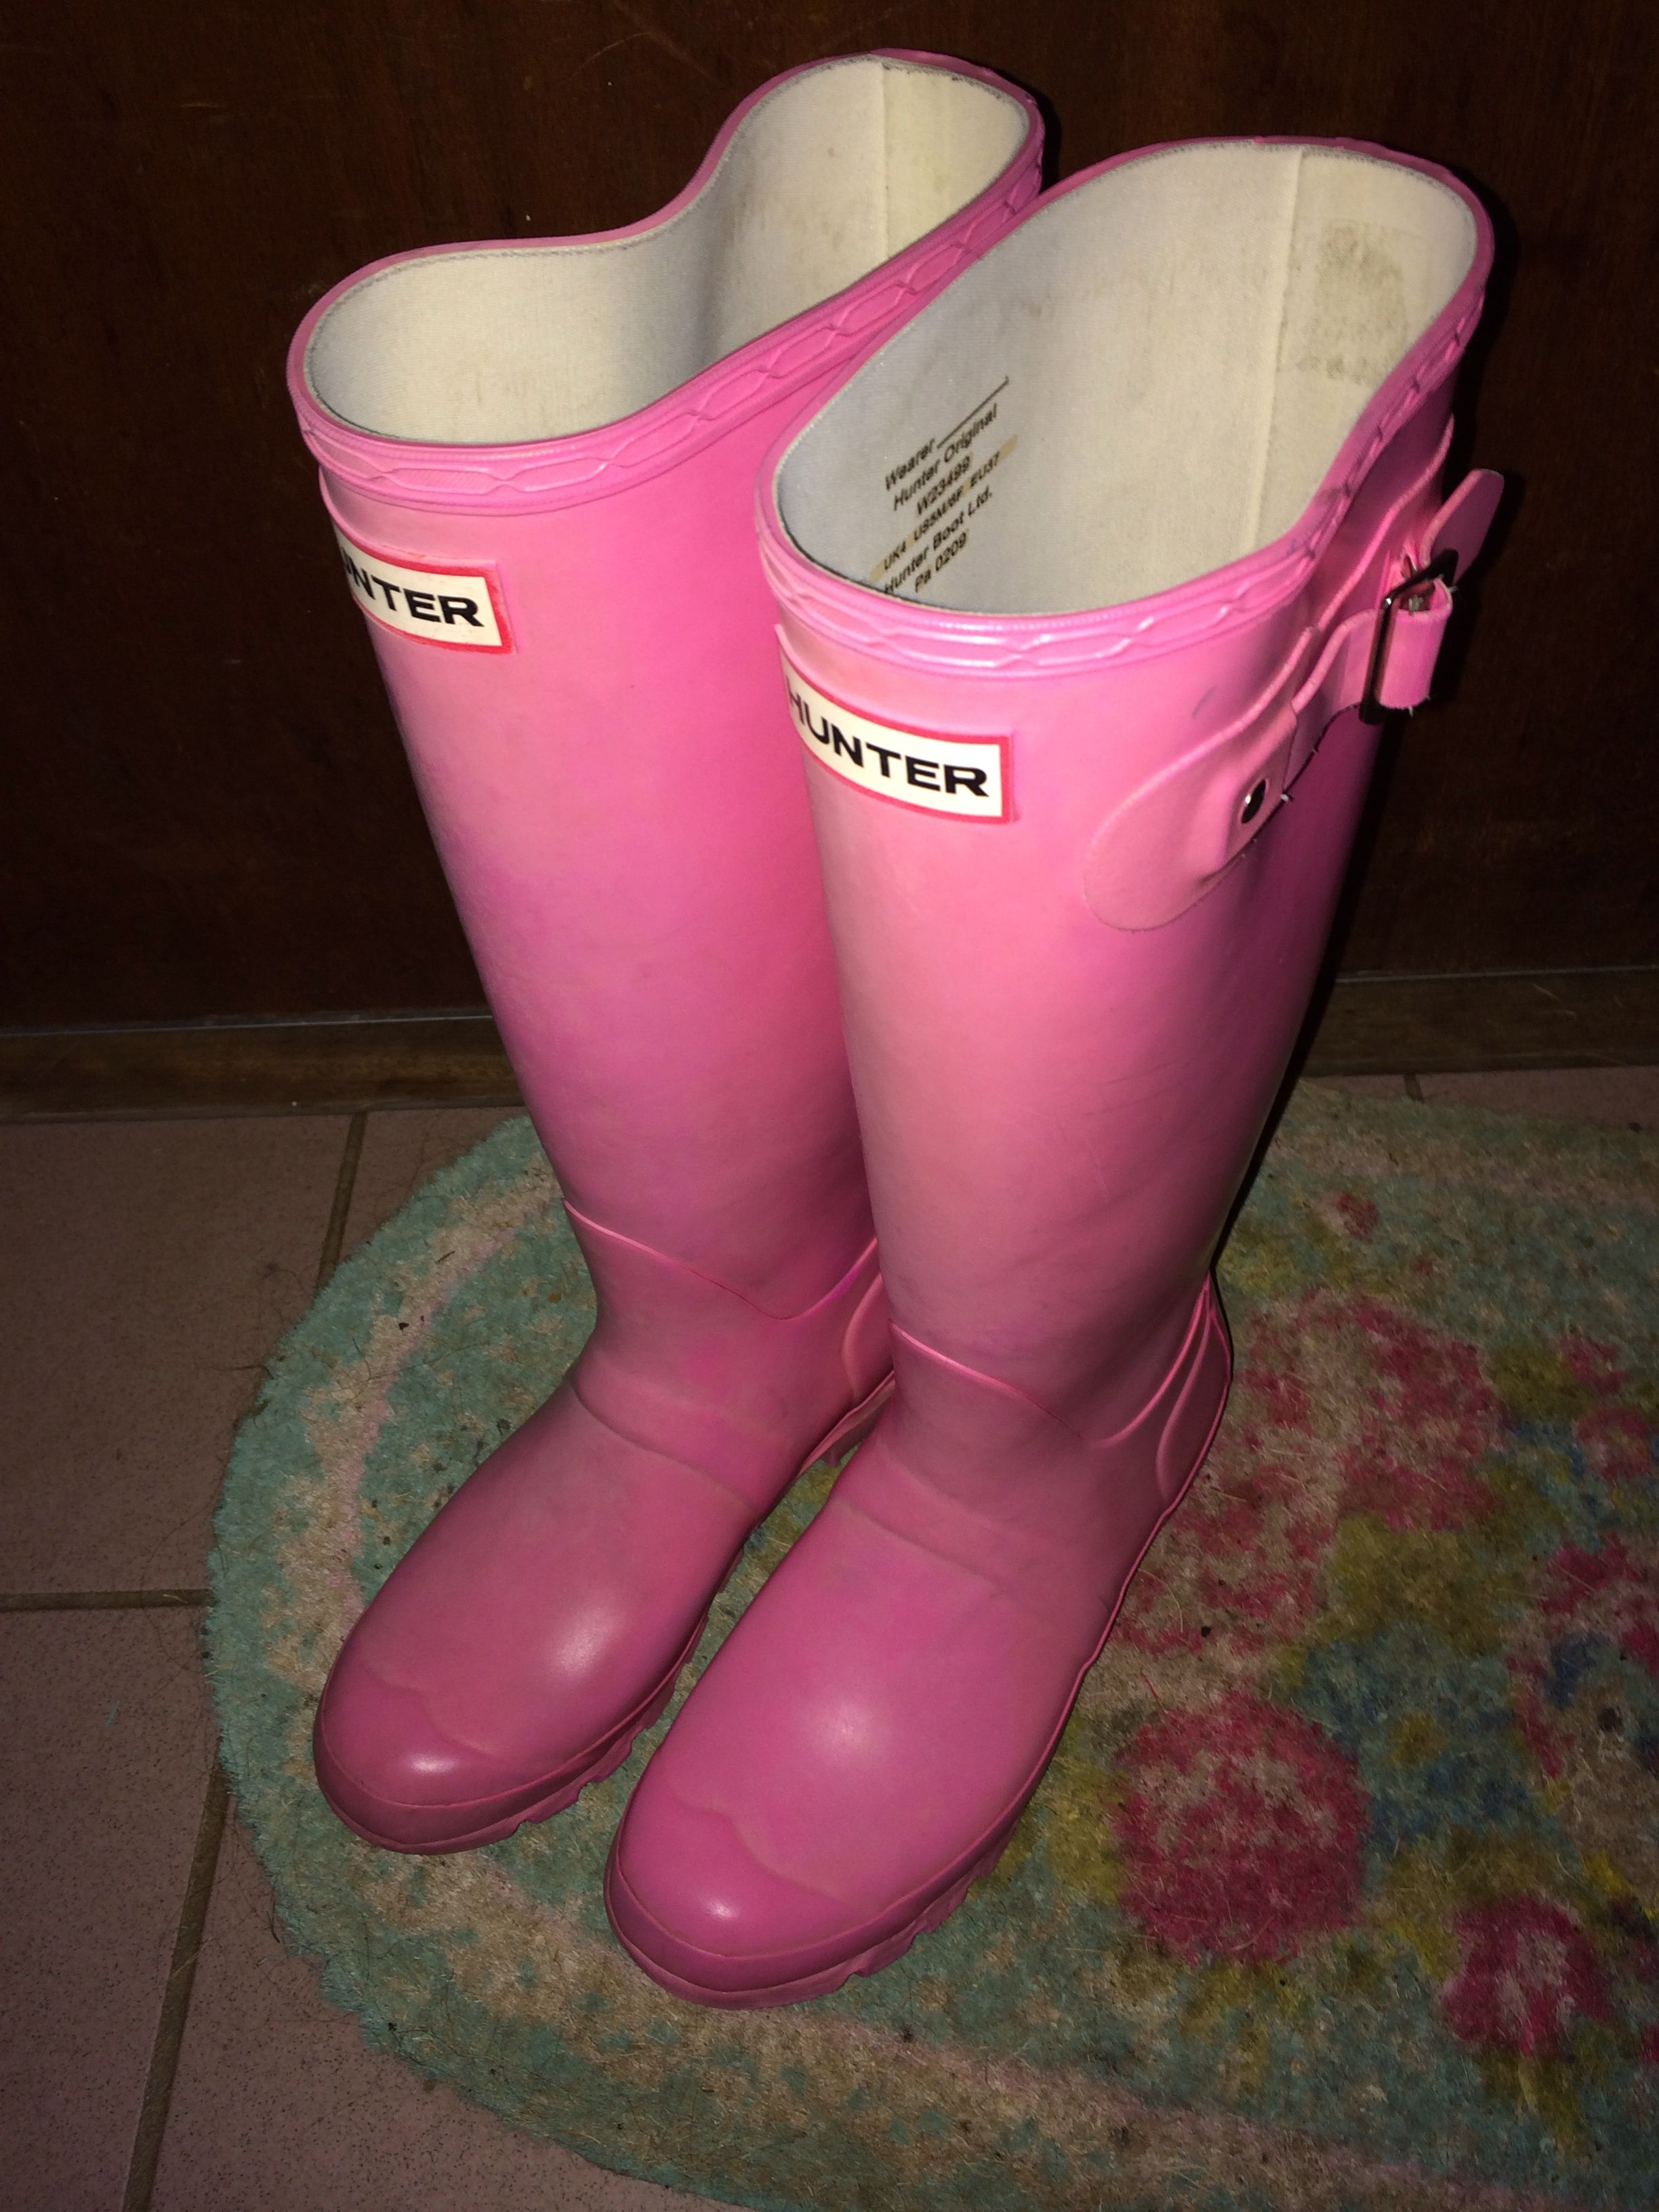 Hunter wellies in bubblegum pink colour! Love them.